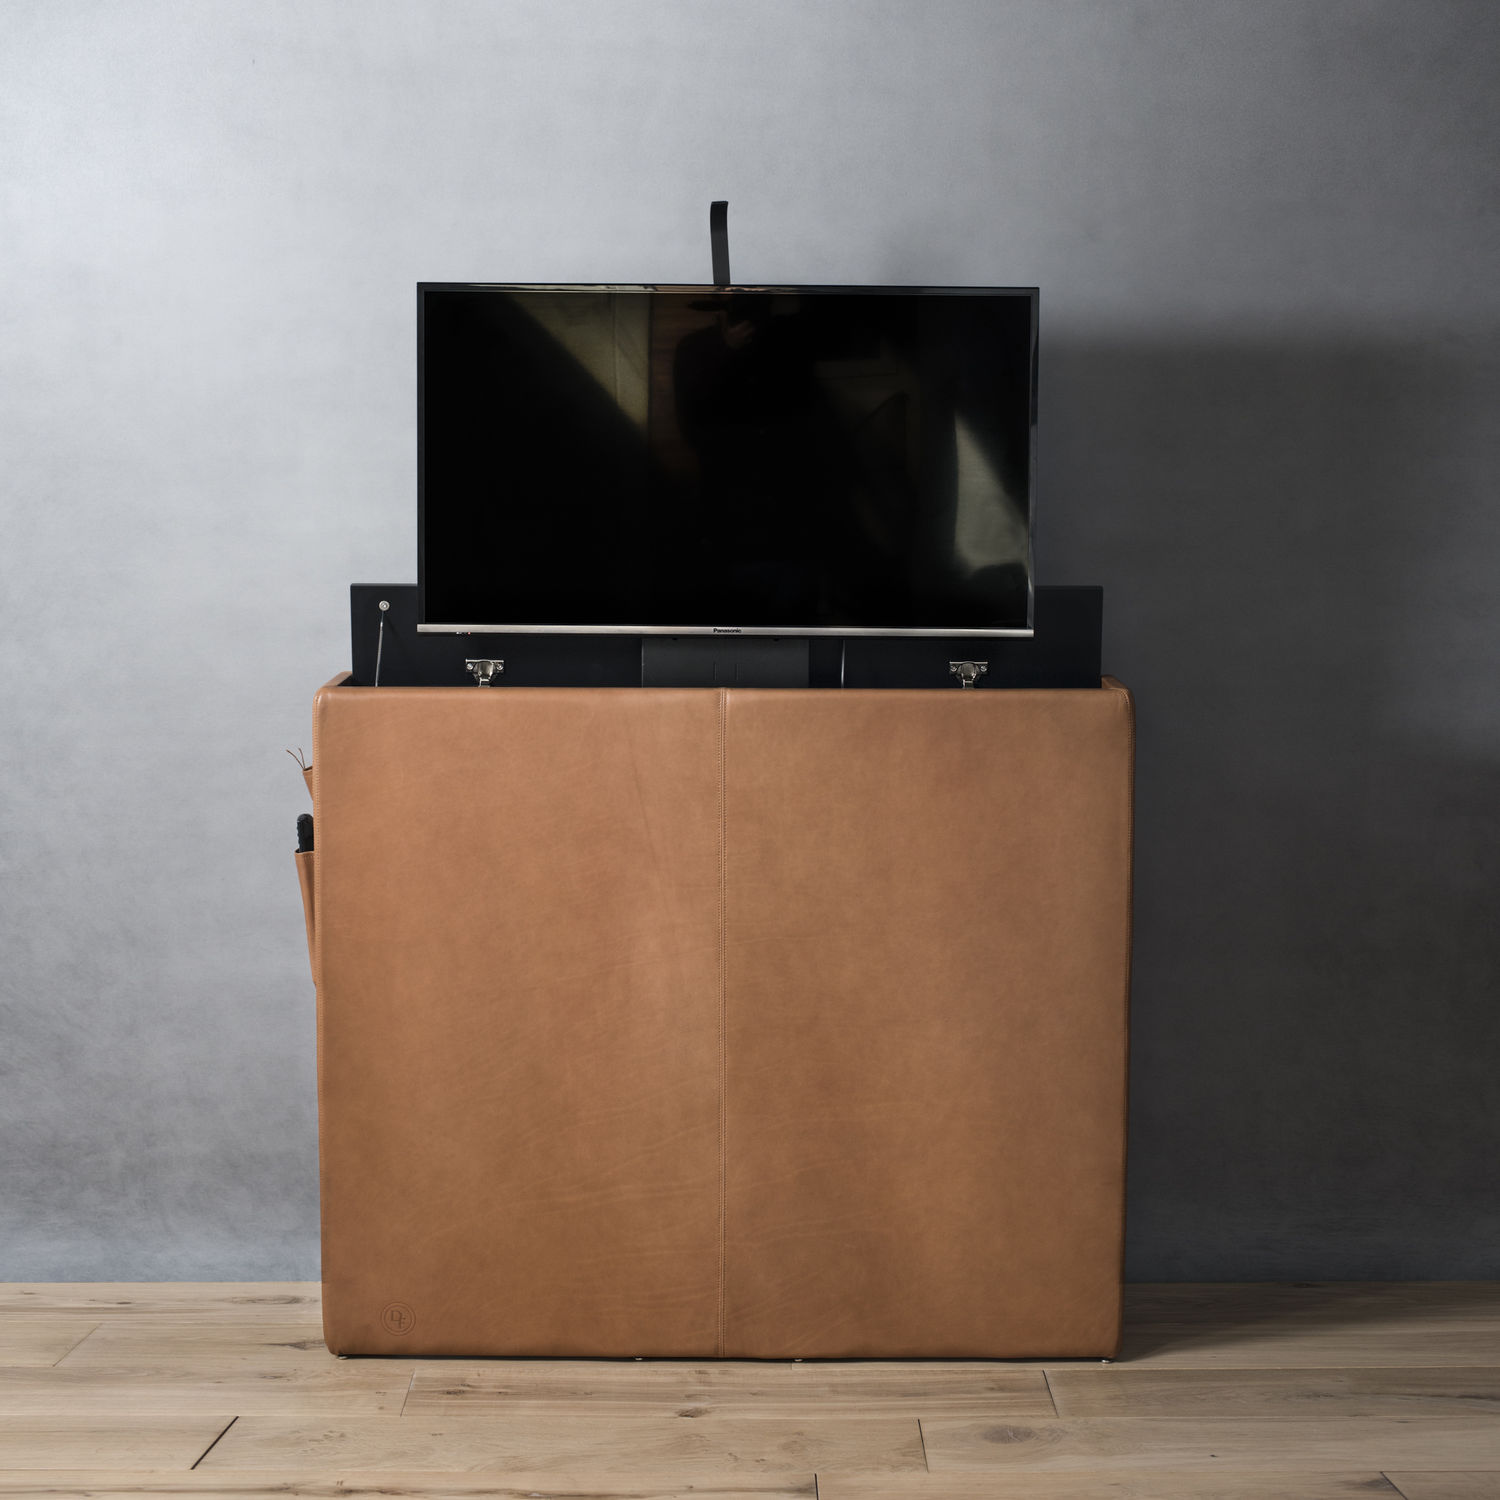 Meuble Tv De Style Sur Mesure En Bois Dedicated Furniture # Meuble Tv De Style